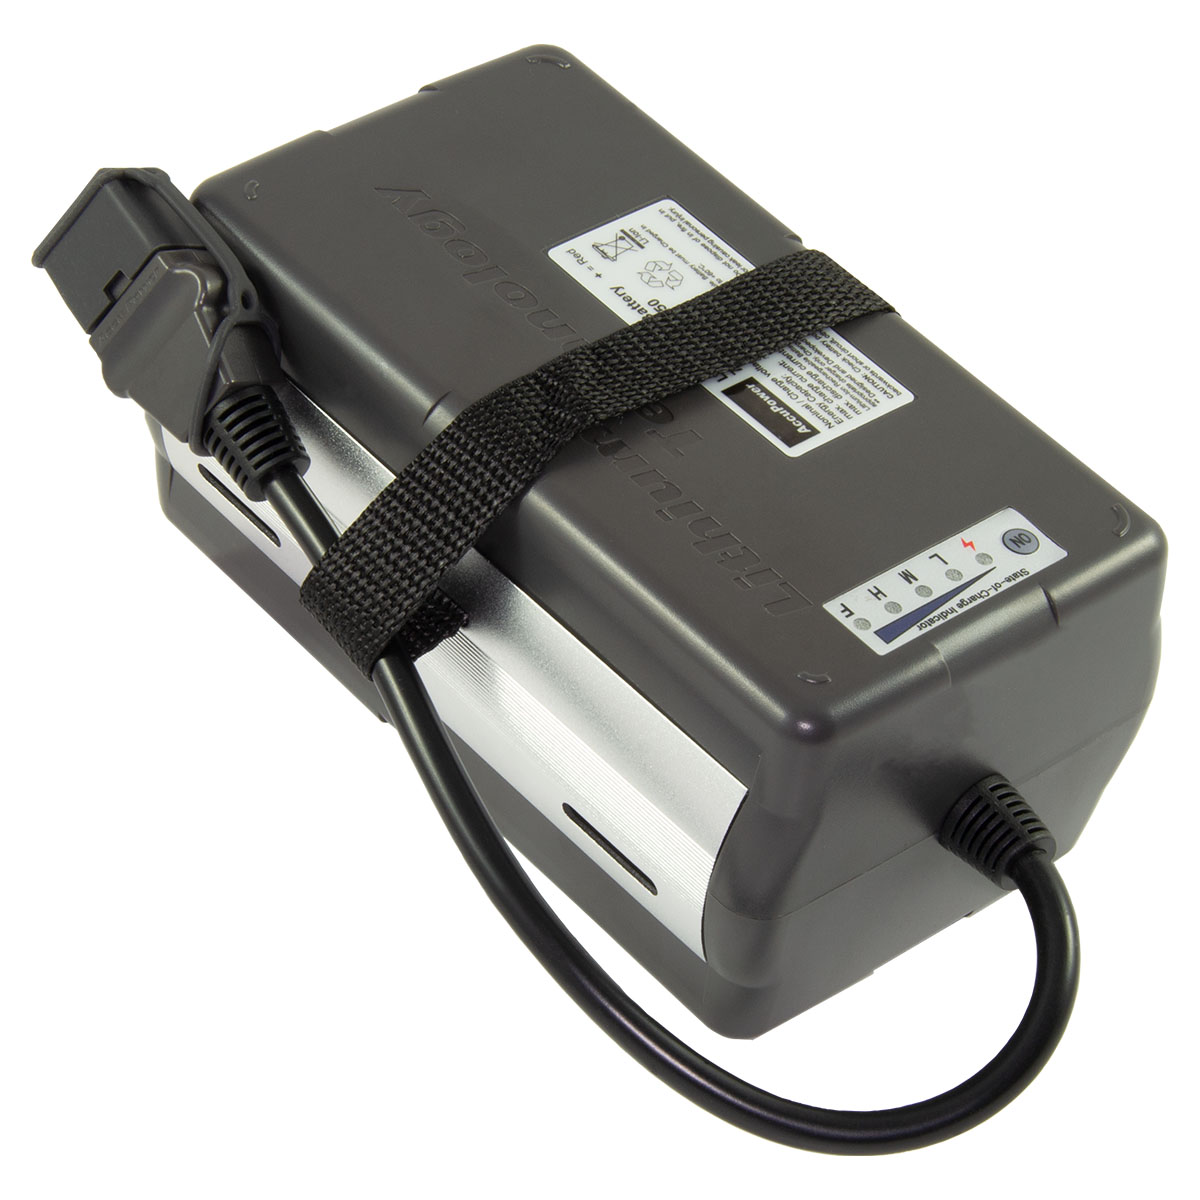 AccuPower Lithium Battery 7S4P 25,9V 10,4Ah 270Wh in housing with LED indicator